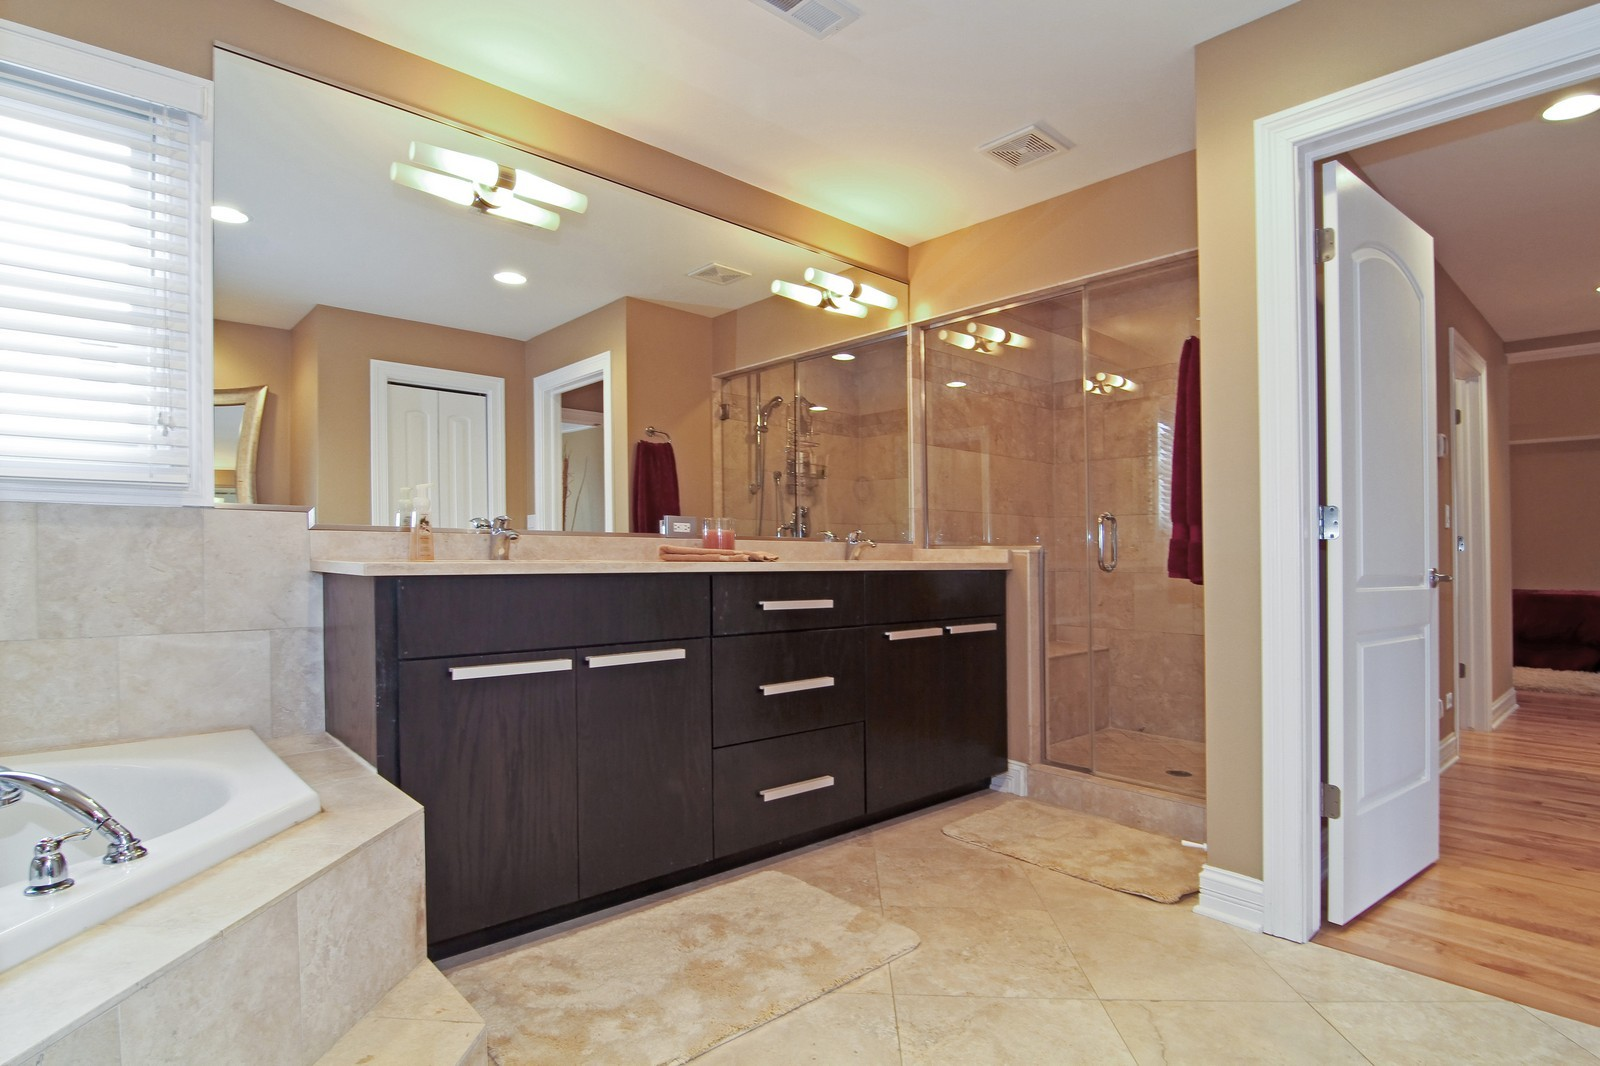 Real Estate Photography - 550 S Linden Ave, Elmhurst, IL, 60126 - Master Bathroom